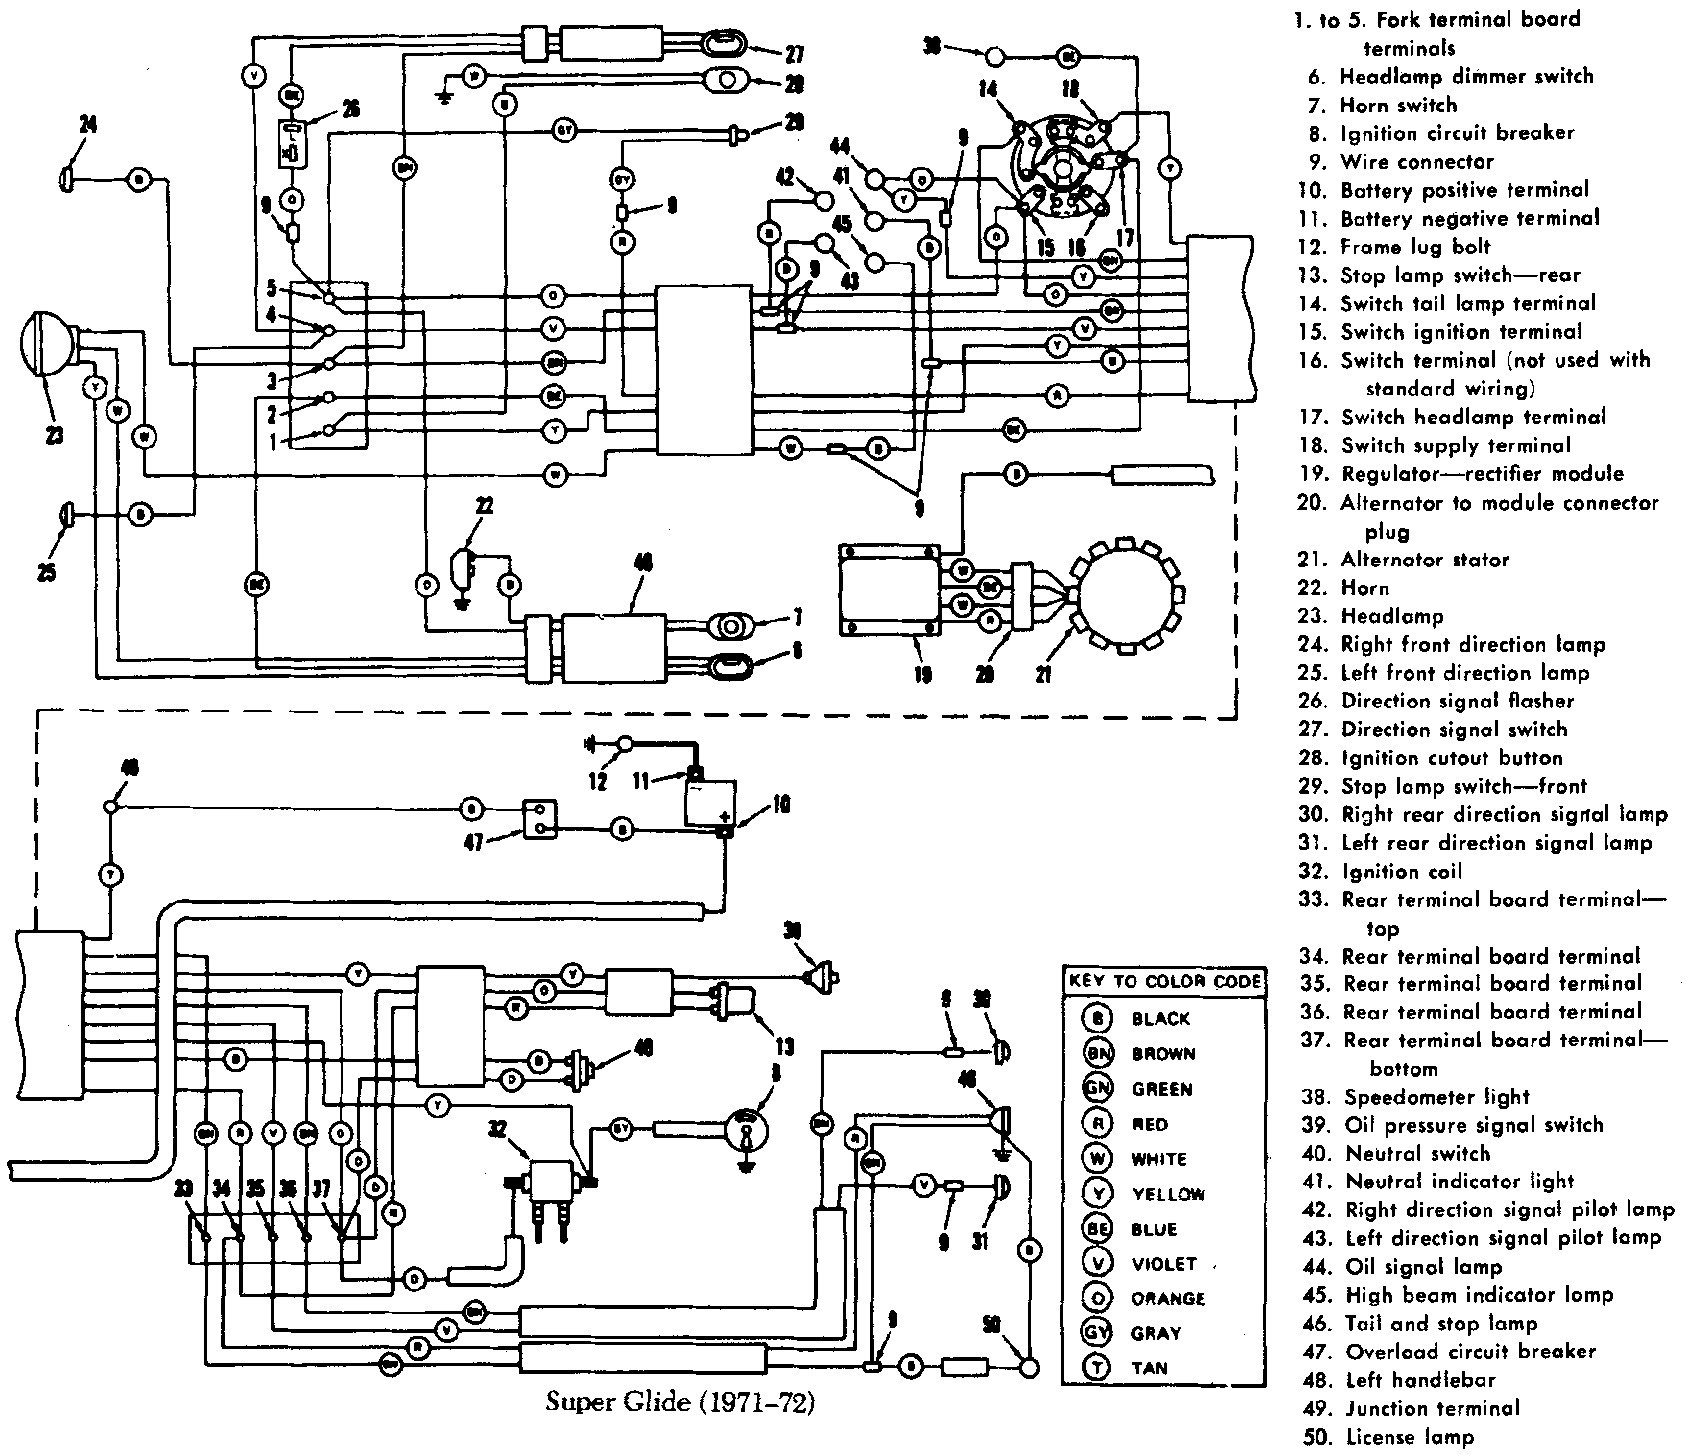 Flht Wiring Diagram